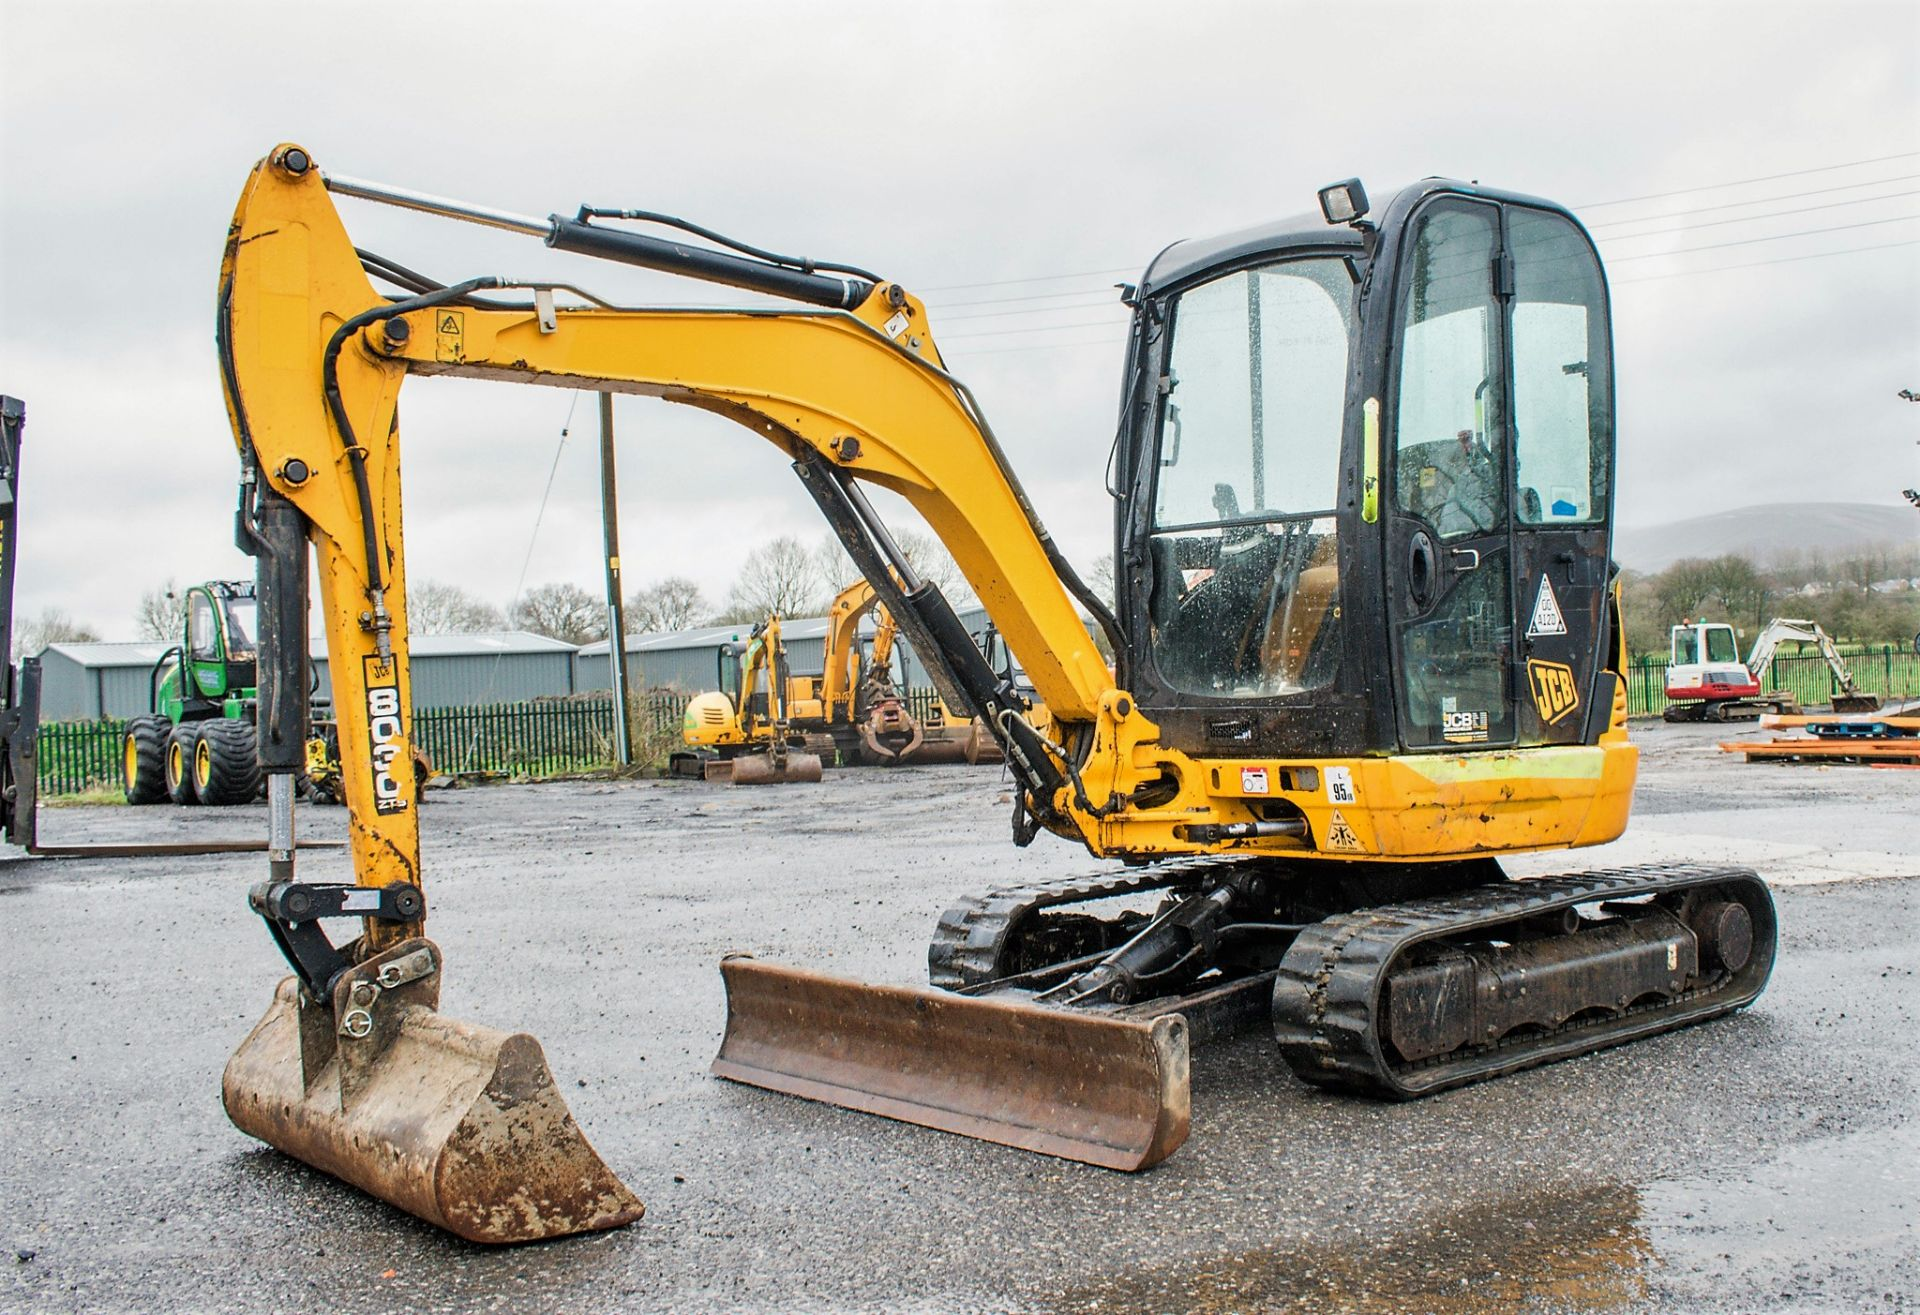 Lot 17 - JCB 8030 ZTS 3 tonne rubber tracked mini excavator Year: 2013 S/N: 2021917 Recorded Hours: 2582